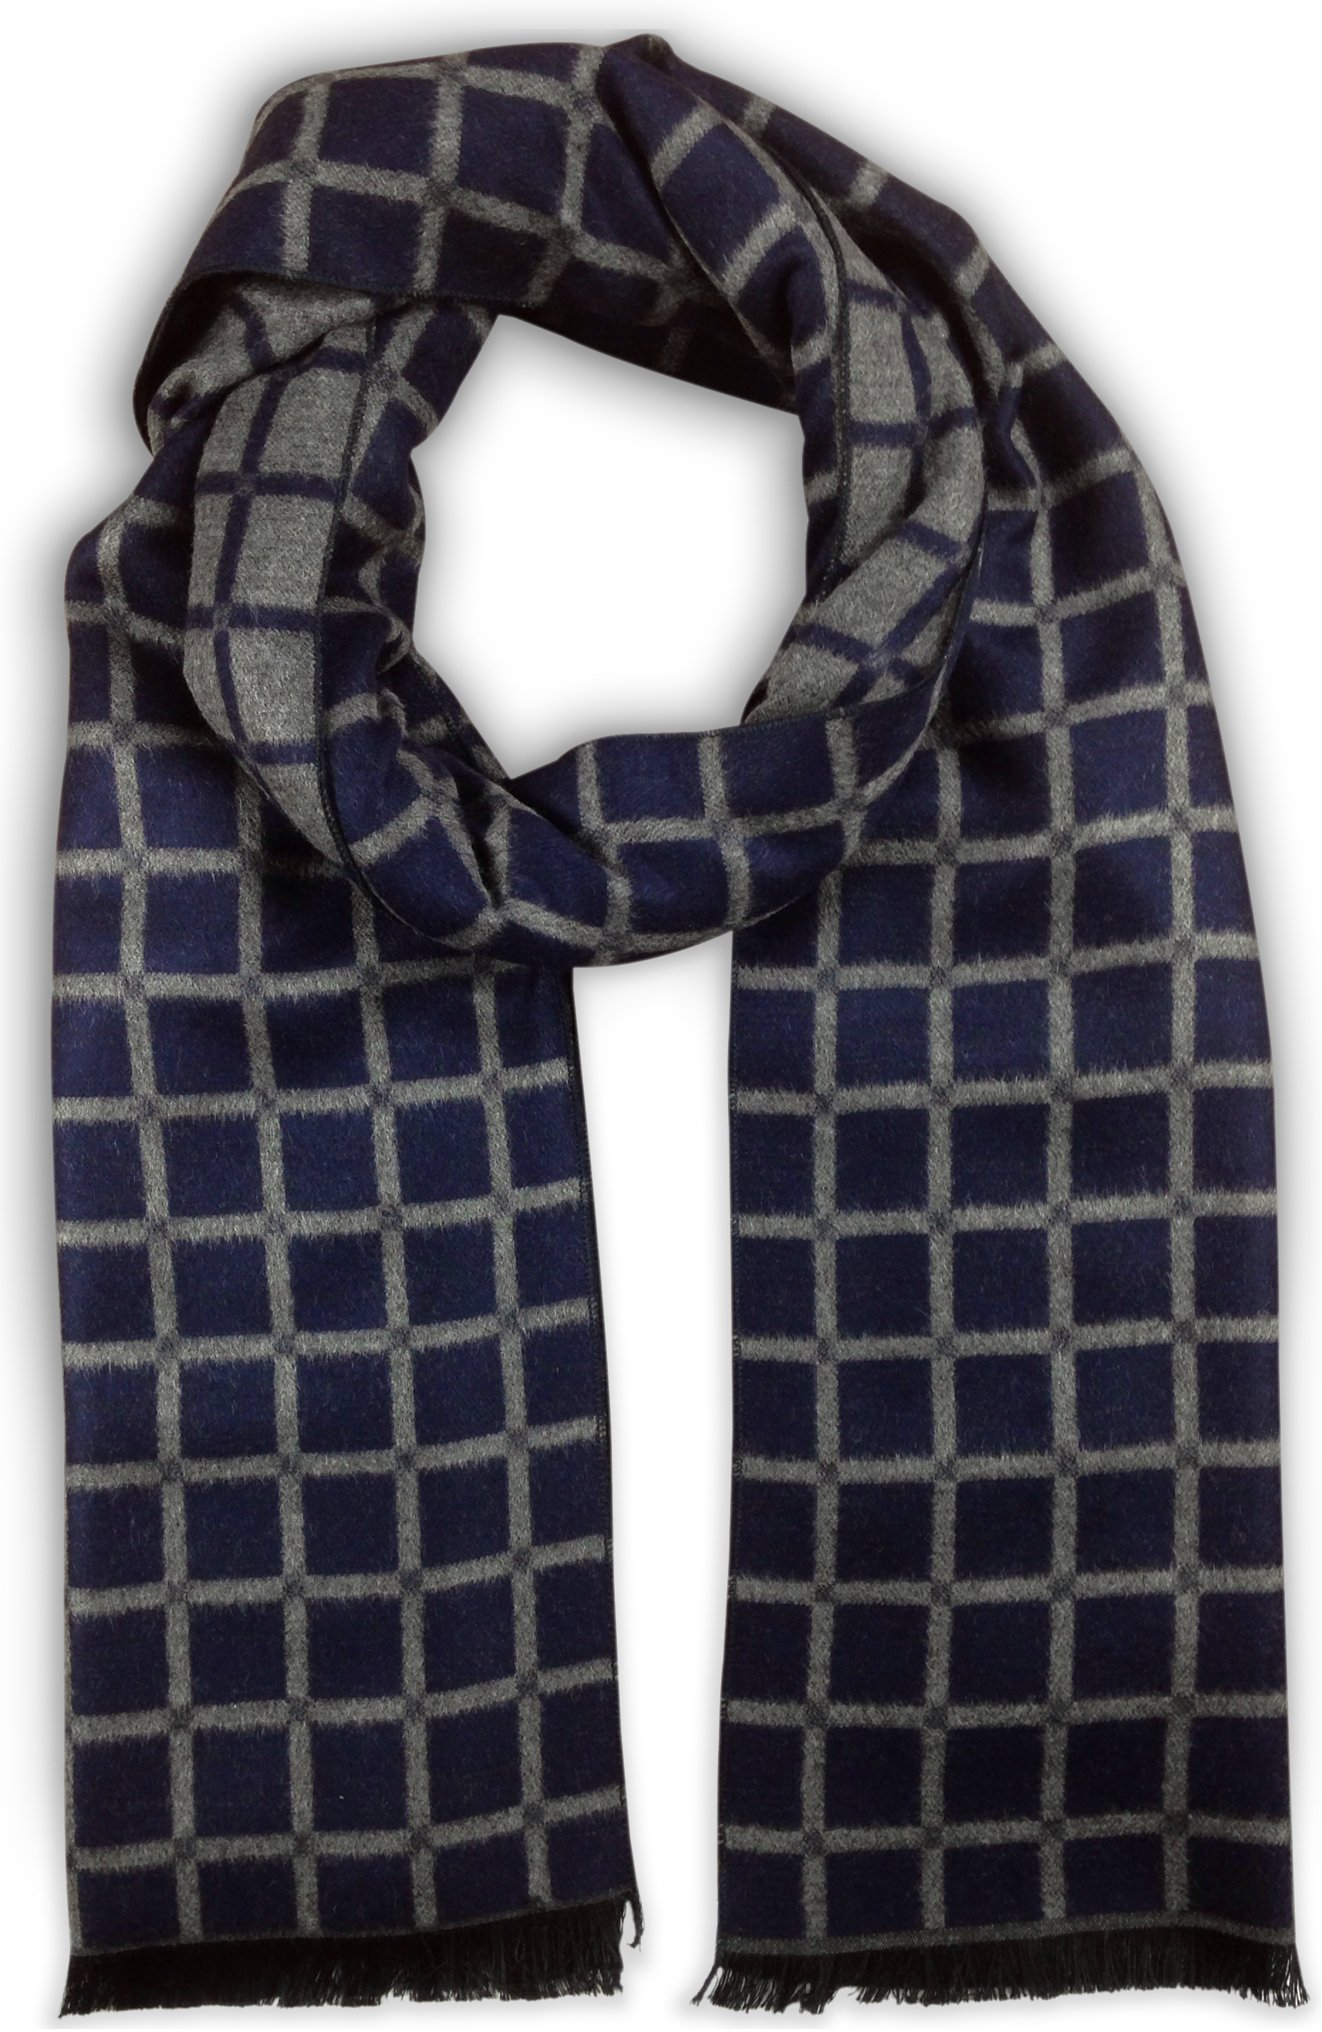 Bleu Nero Luxurious Winter Scarf for Men and Women – Large Selection of Unique Design Scarves – Super Soft Premium Cashmere Feel (Navy/Grey Windowpane)